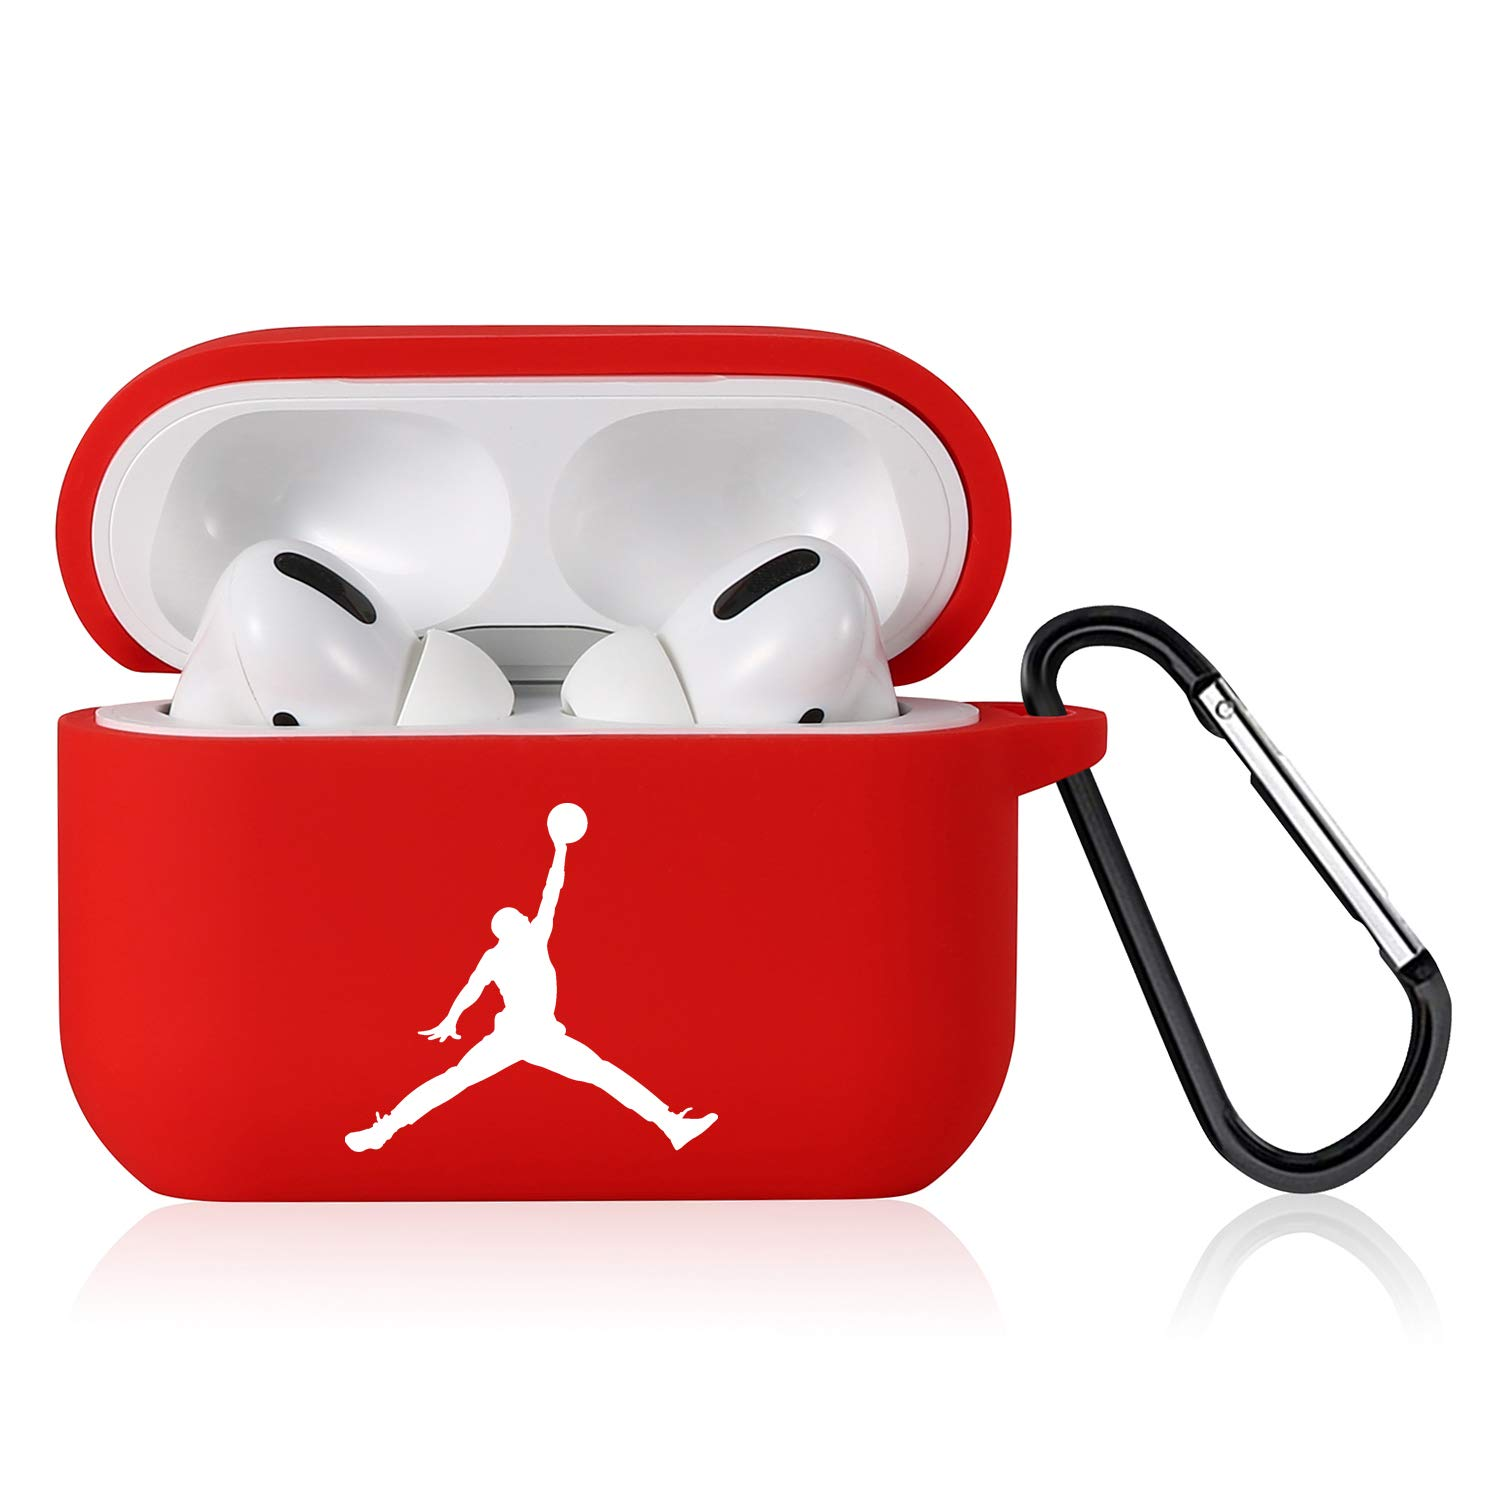 Punswan for Airpods Pro Case,Cute 3D Luxury Character Soft Silicone Stylish Cover, Sport Fun Cool Keychain Style Design Skin,Cases with Lanyard Chain,for Girls Kids Boys Men Air pods Pro/3 (Red Jorda)